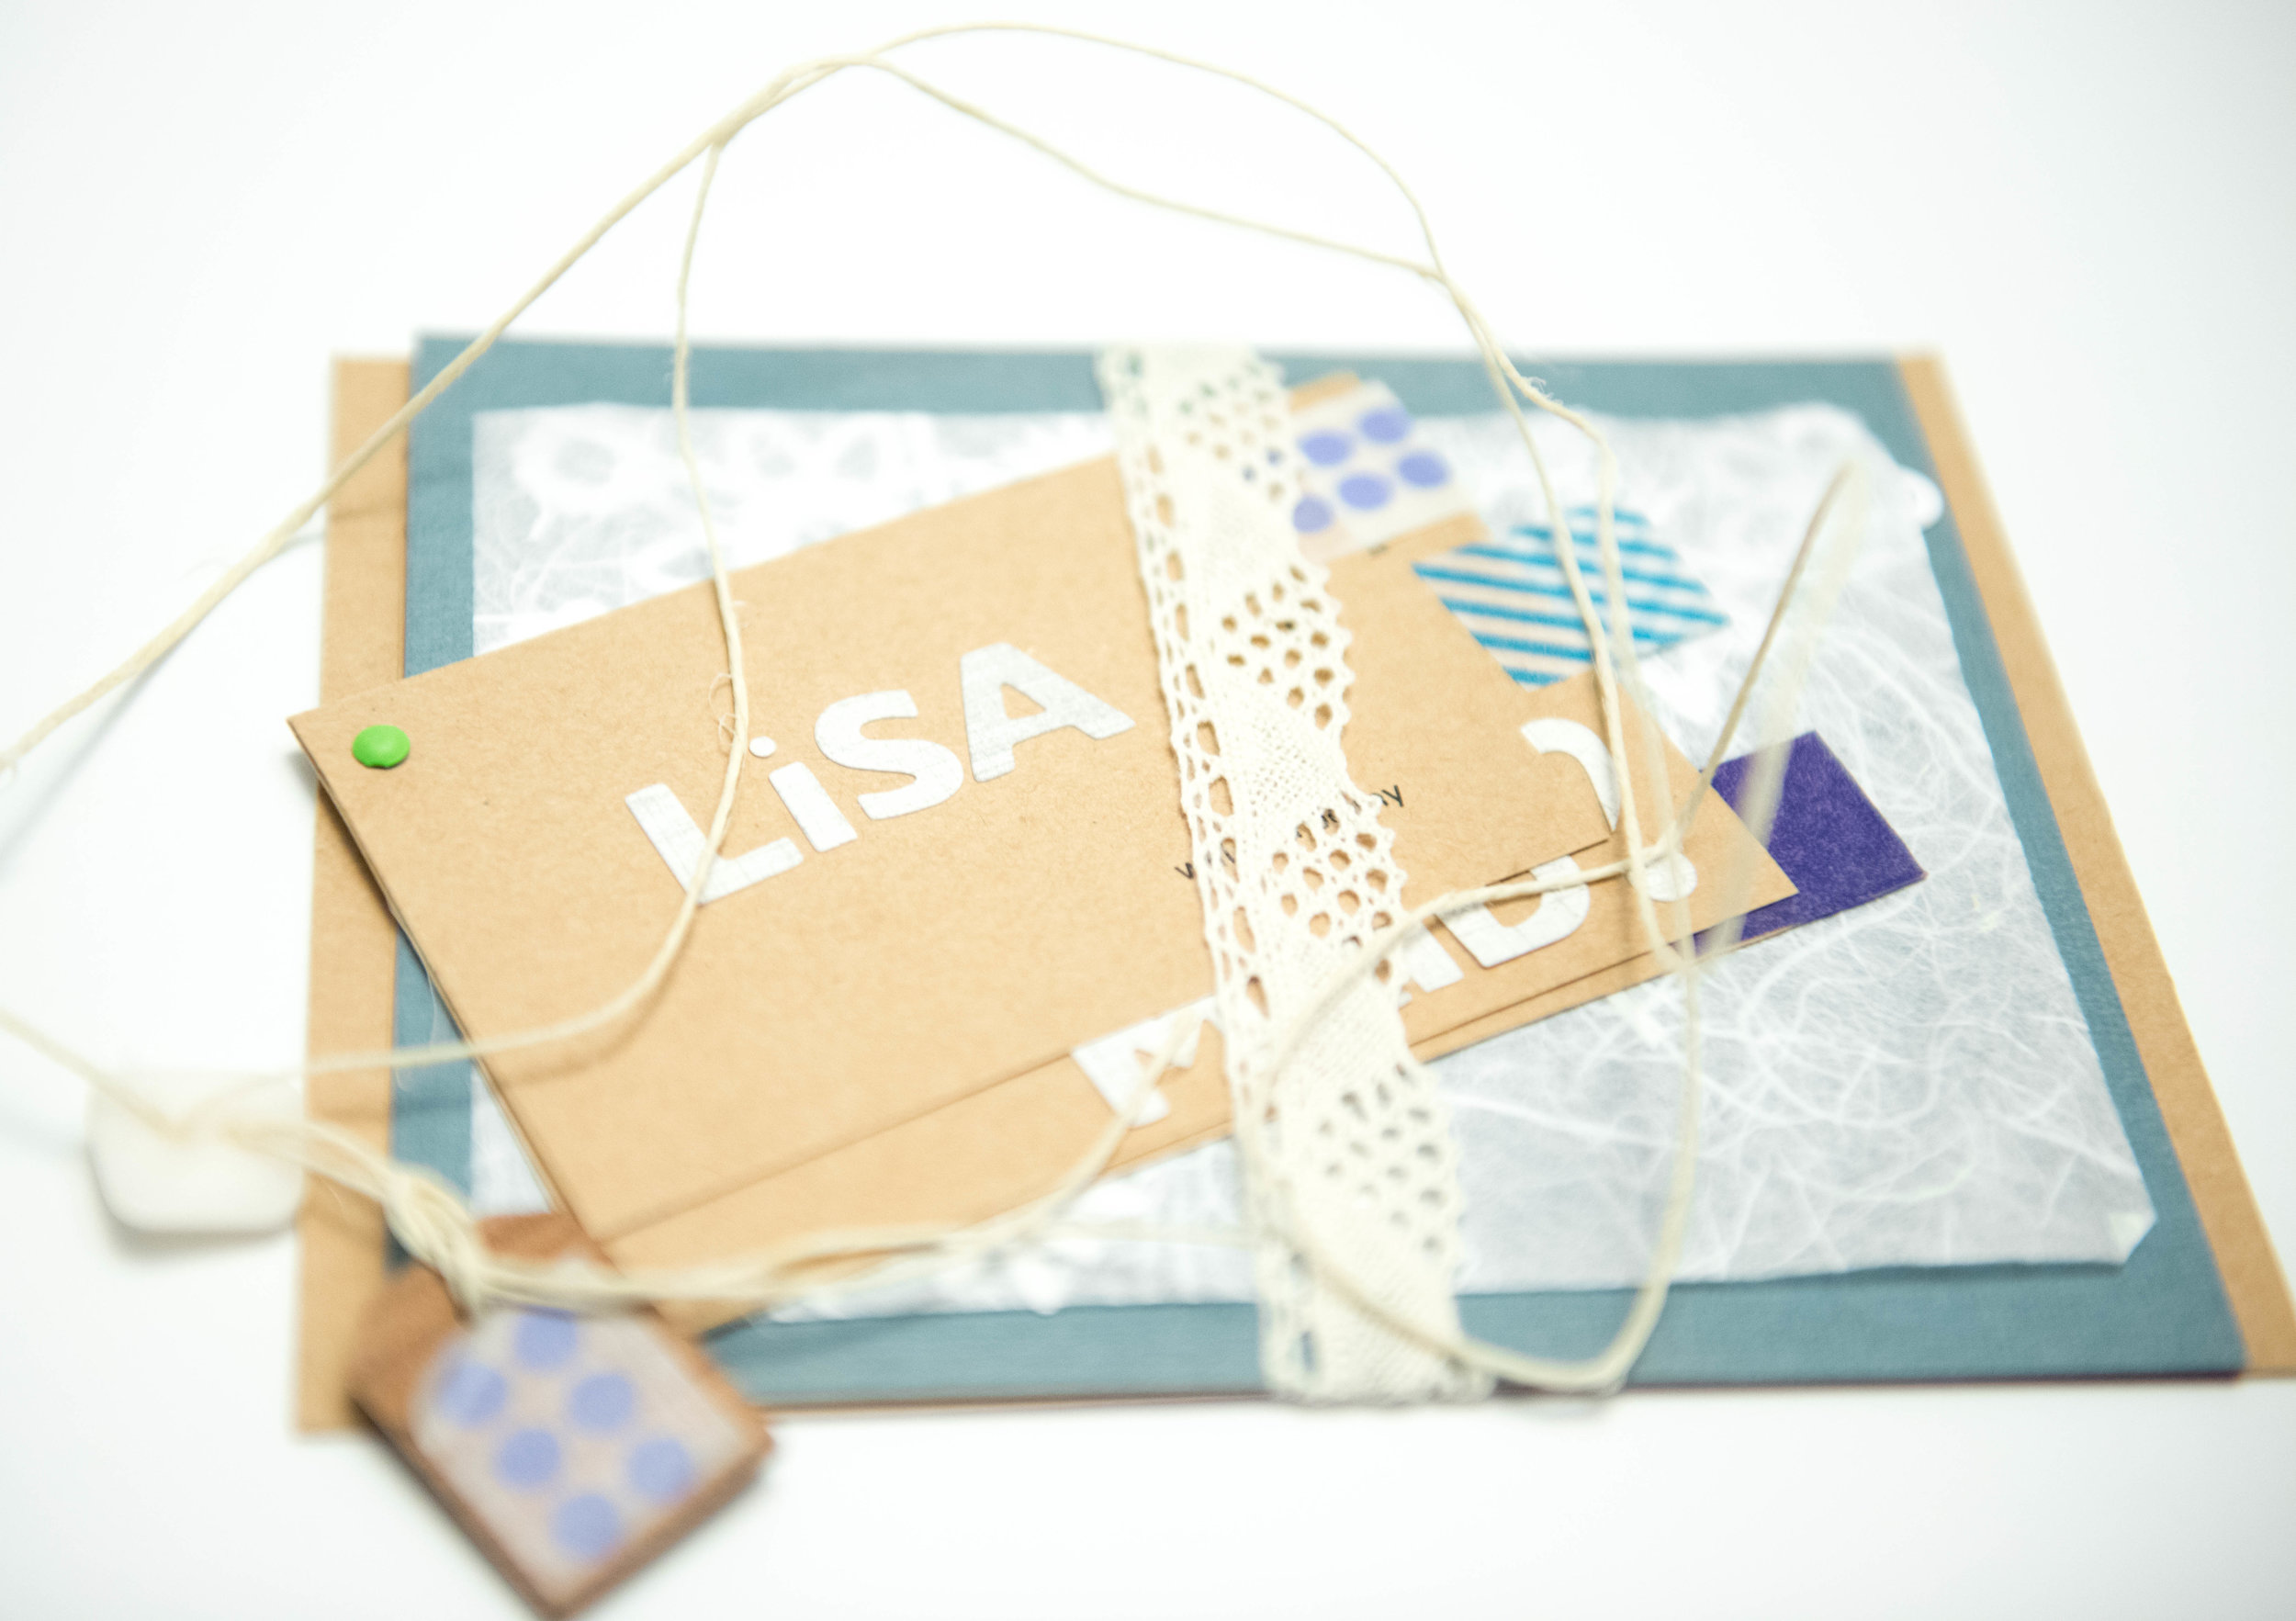 Personalized handcrafted bridesmaid proposal invitation made with card stock, twine, washi take and lace - www.lisavillellaphotography.com